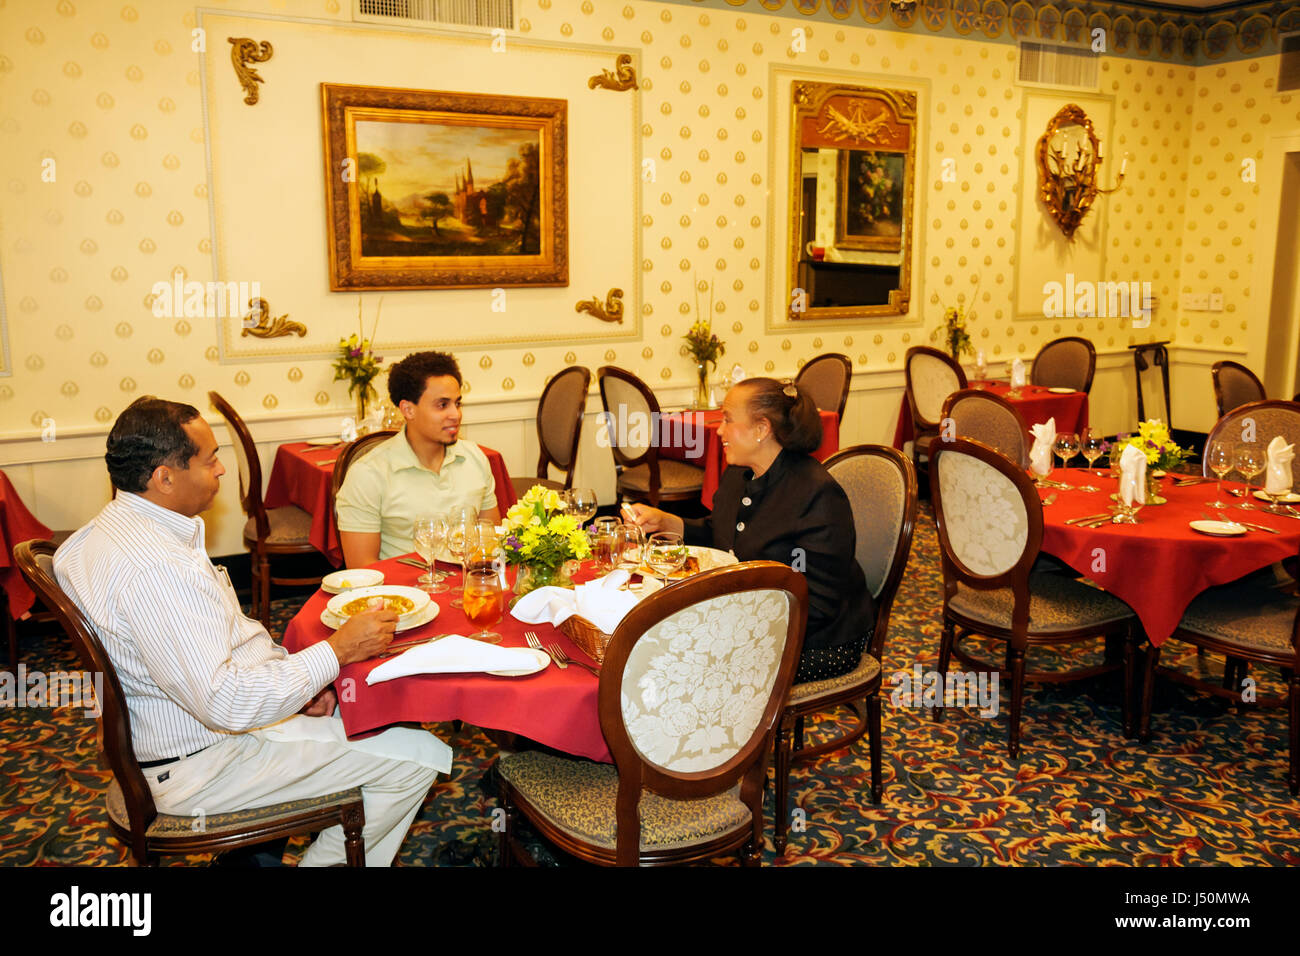 Selma Alabama St. James Hotel restaurant dining room Black family man woman father mother son student table - Stock Image